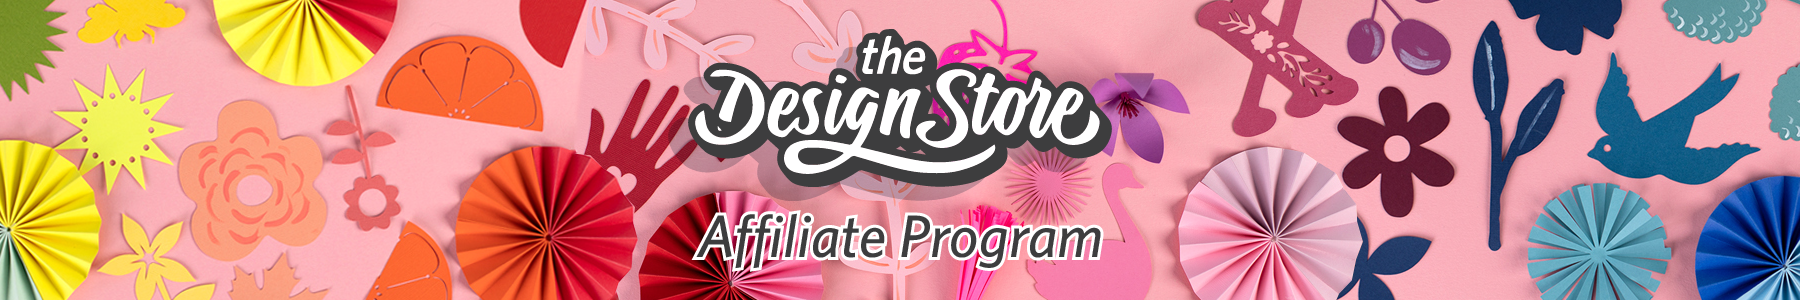 Design Store Affiliate Program Masthead (Desktop)